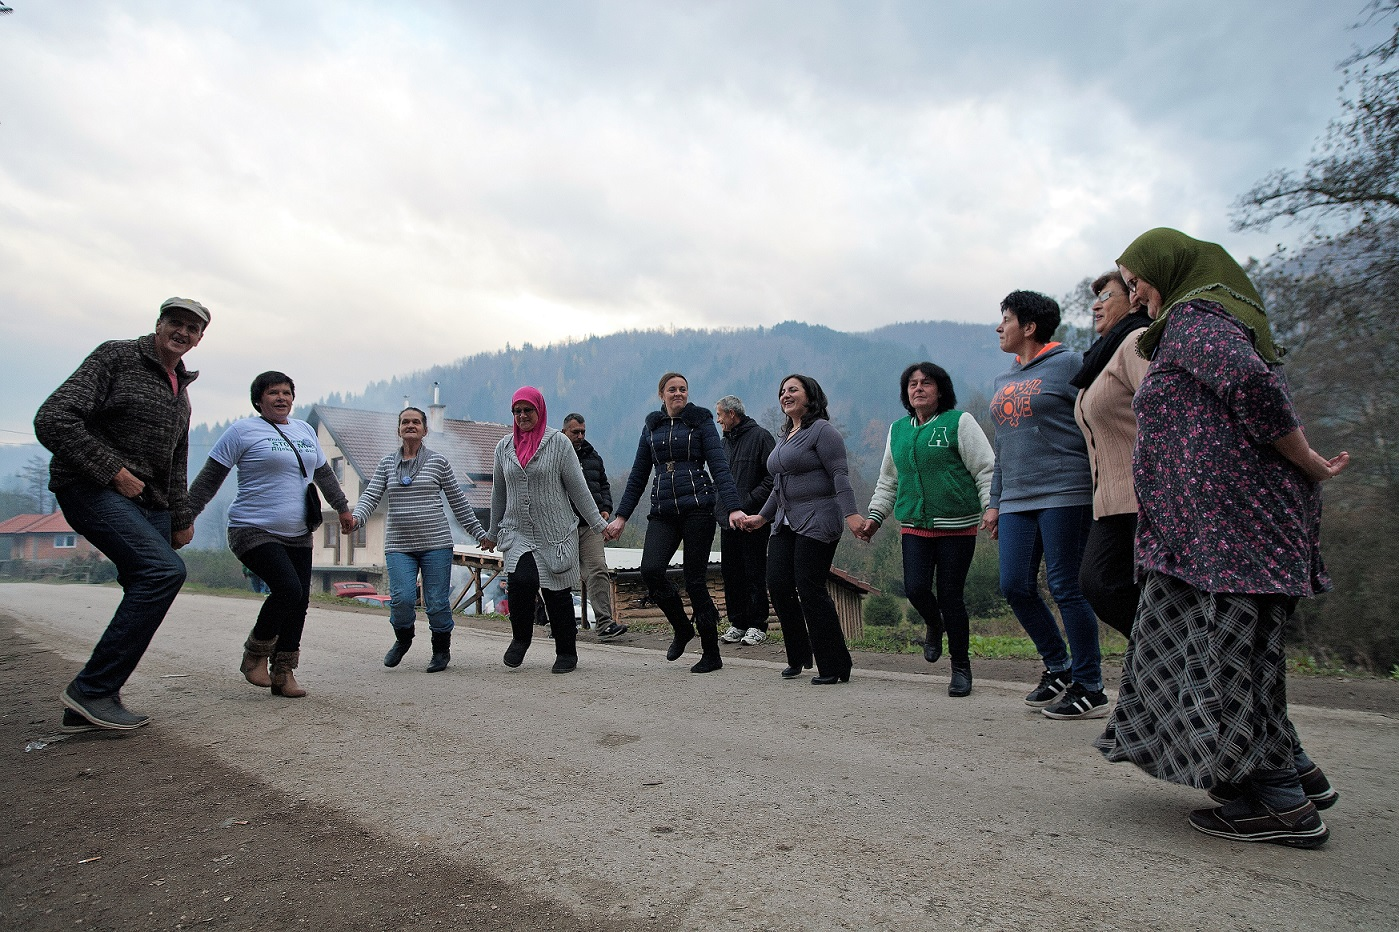 The brave women of Kruščica celebrating as they vacate the bridge after over 500 days and nights. © Sediva fotografie/ Arnika